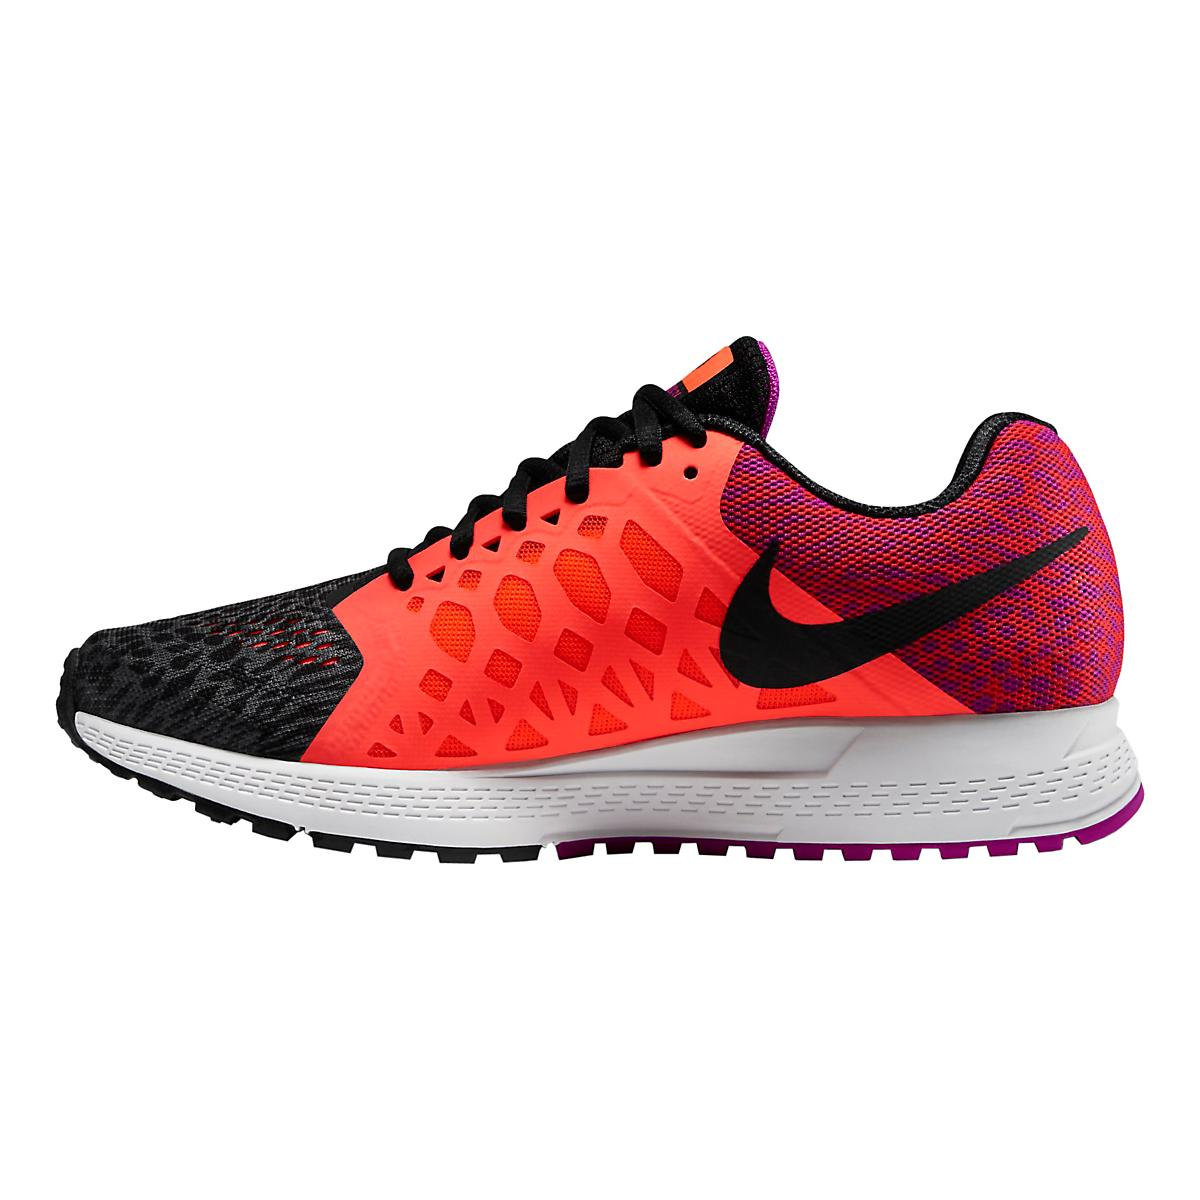 new concept 150dd 68740 Womens Nike Air Zoom Pegasus 31 Oregon Project Running Shoe at Road Runner  Sports